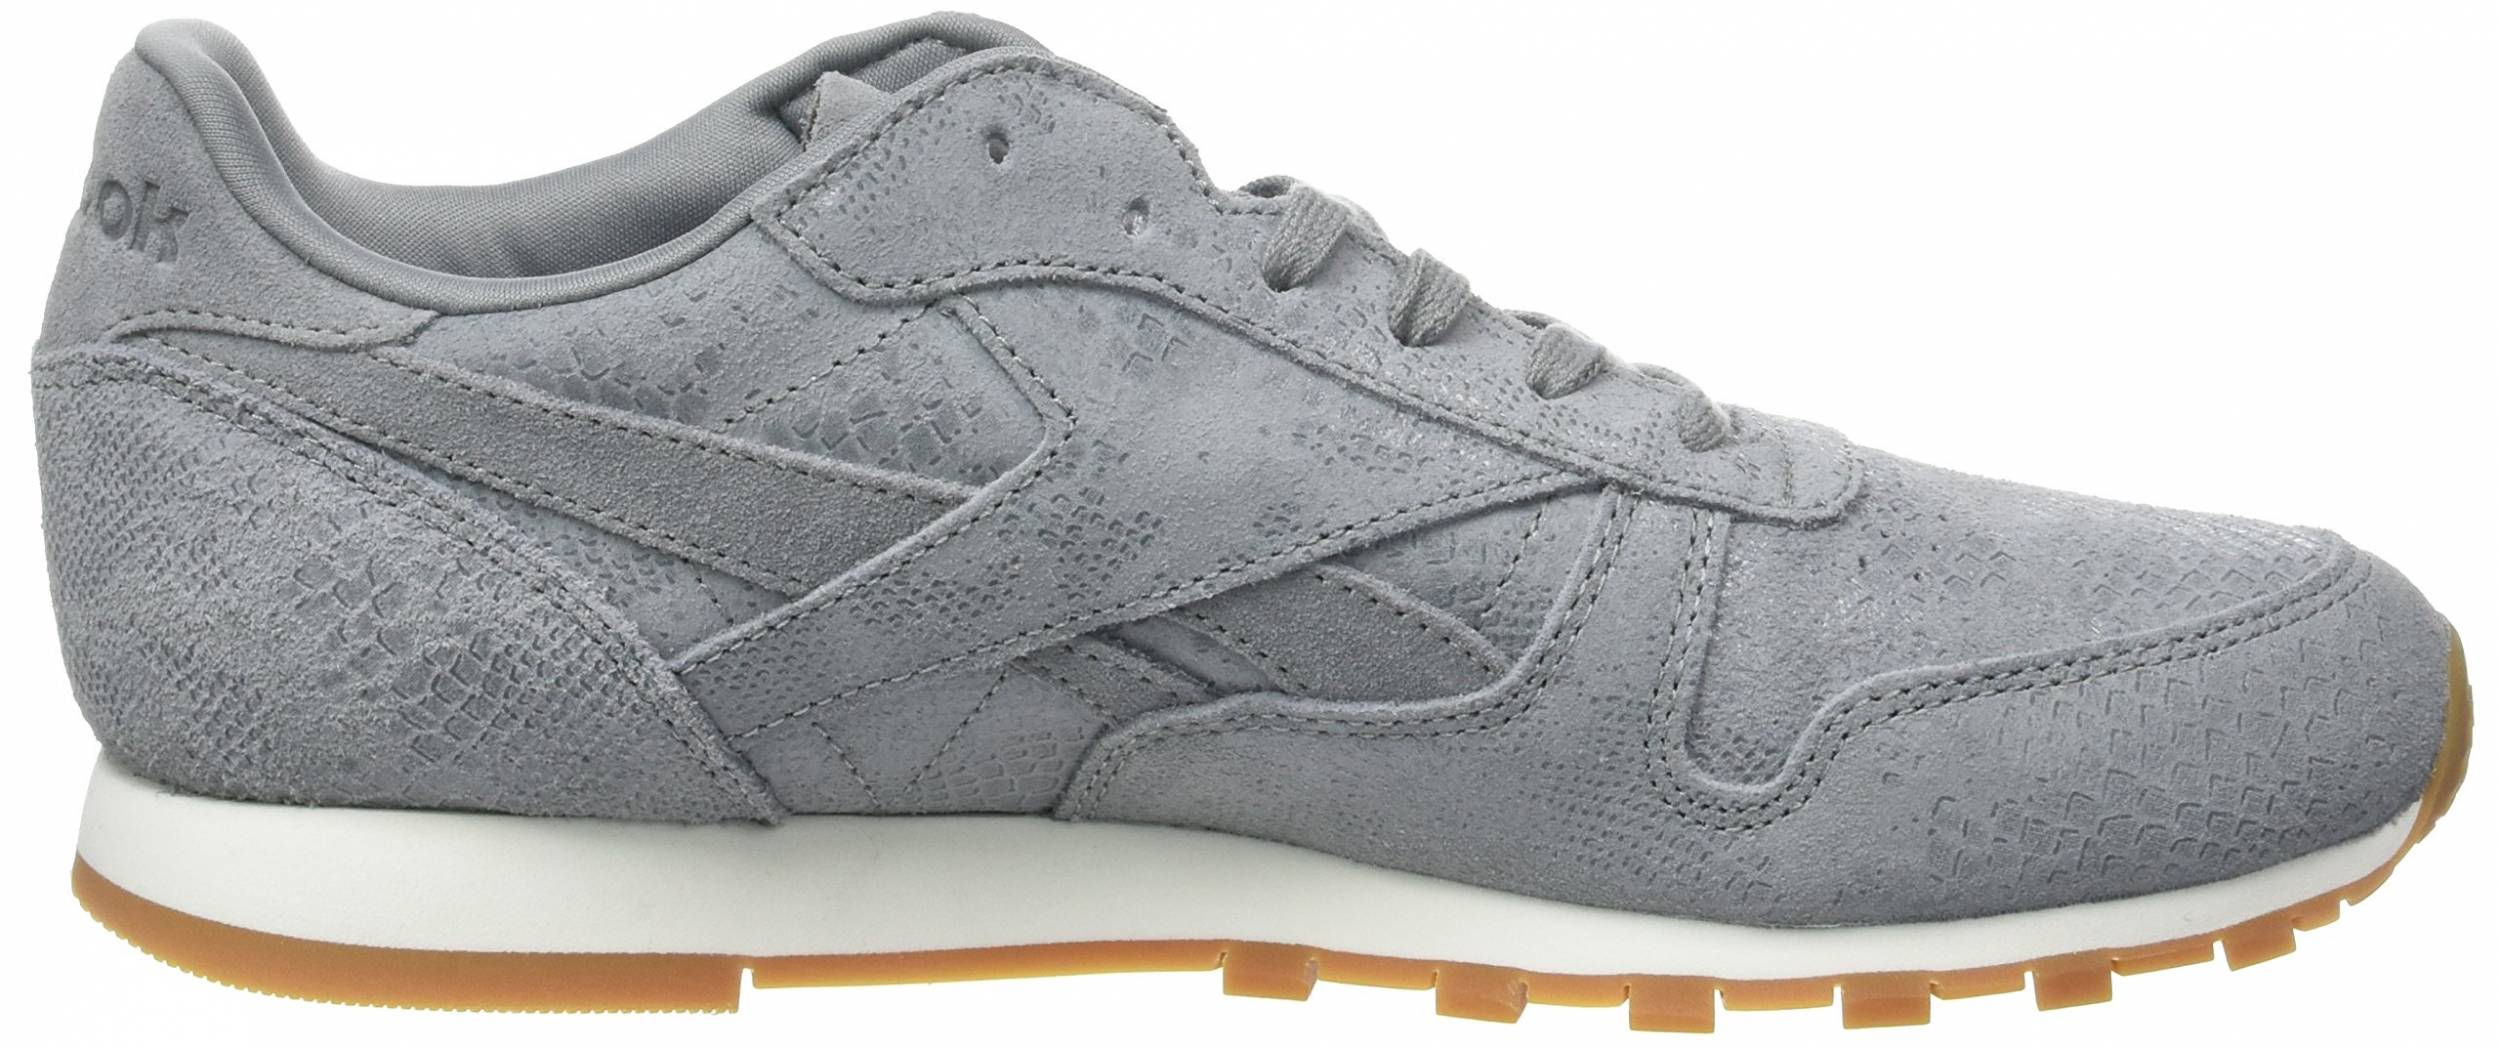 Reebok Classic Leather Clean Exotics